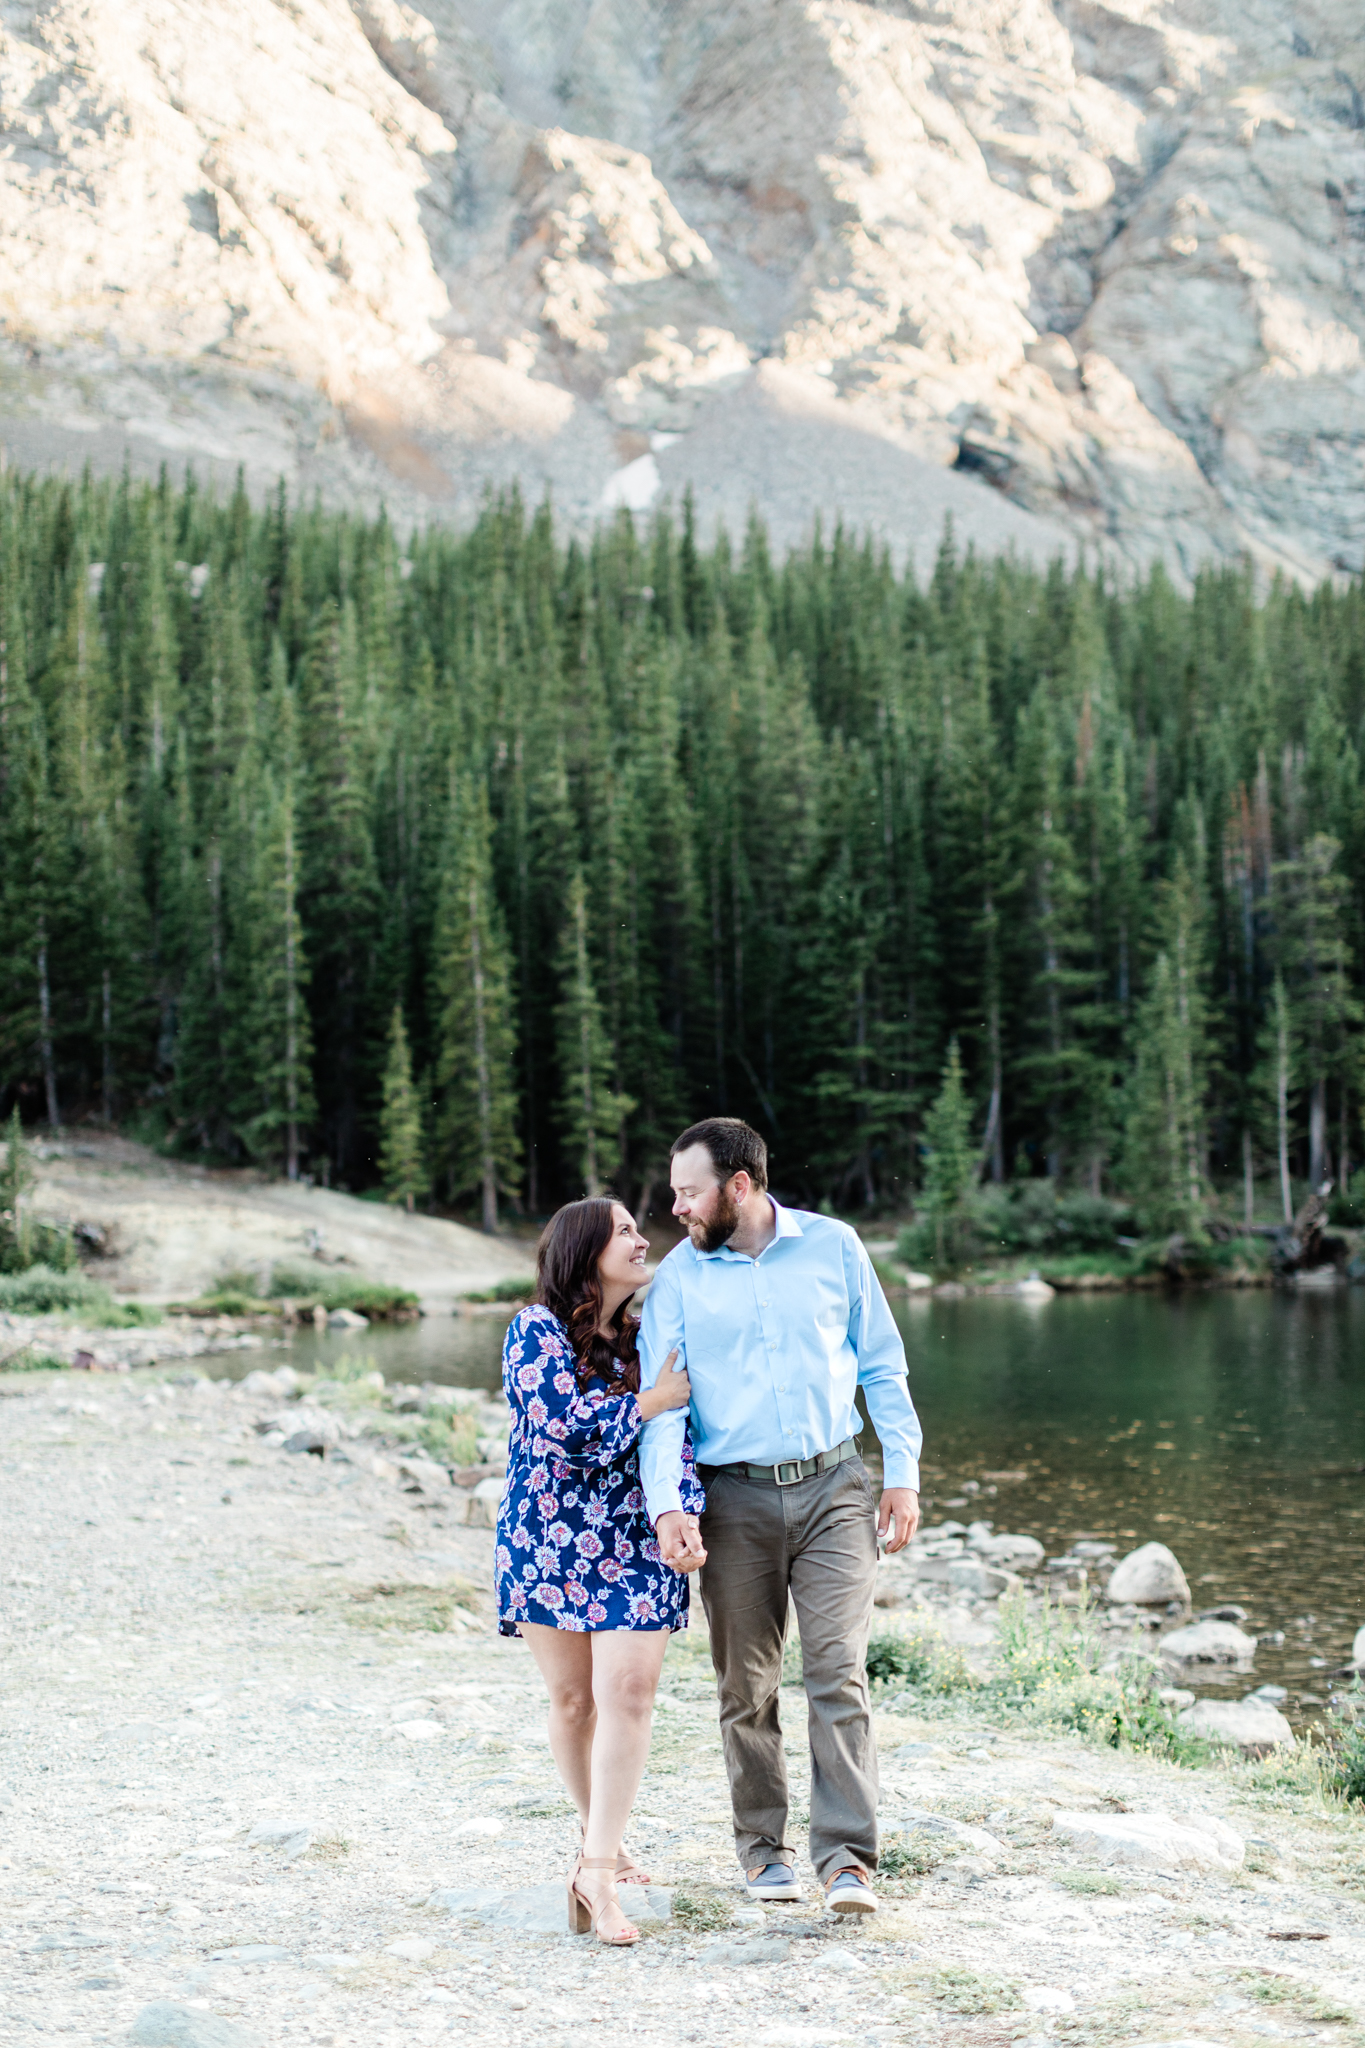 Ally_Joe_Breckenridge_Engagement_Session_21